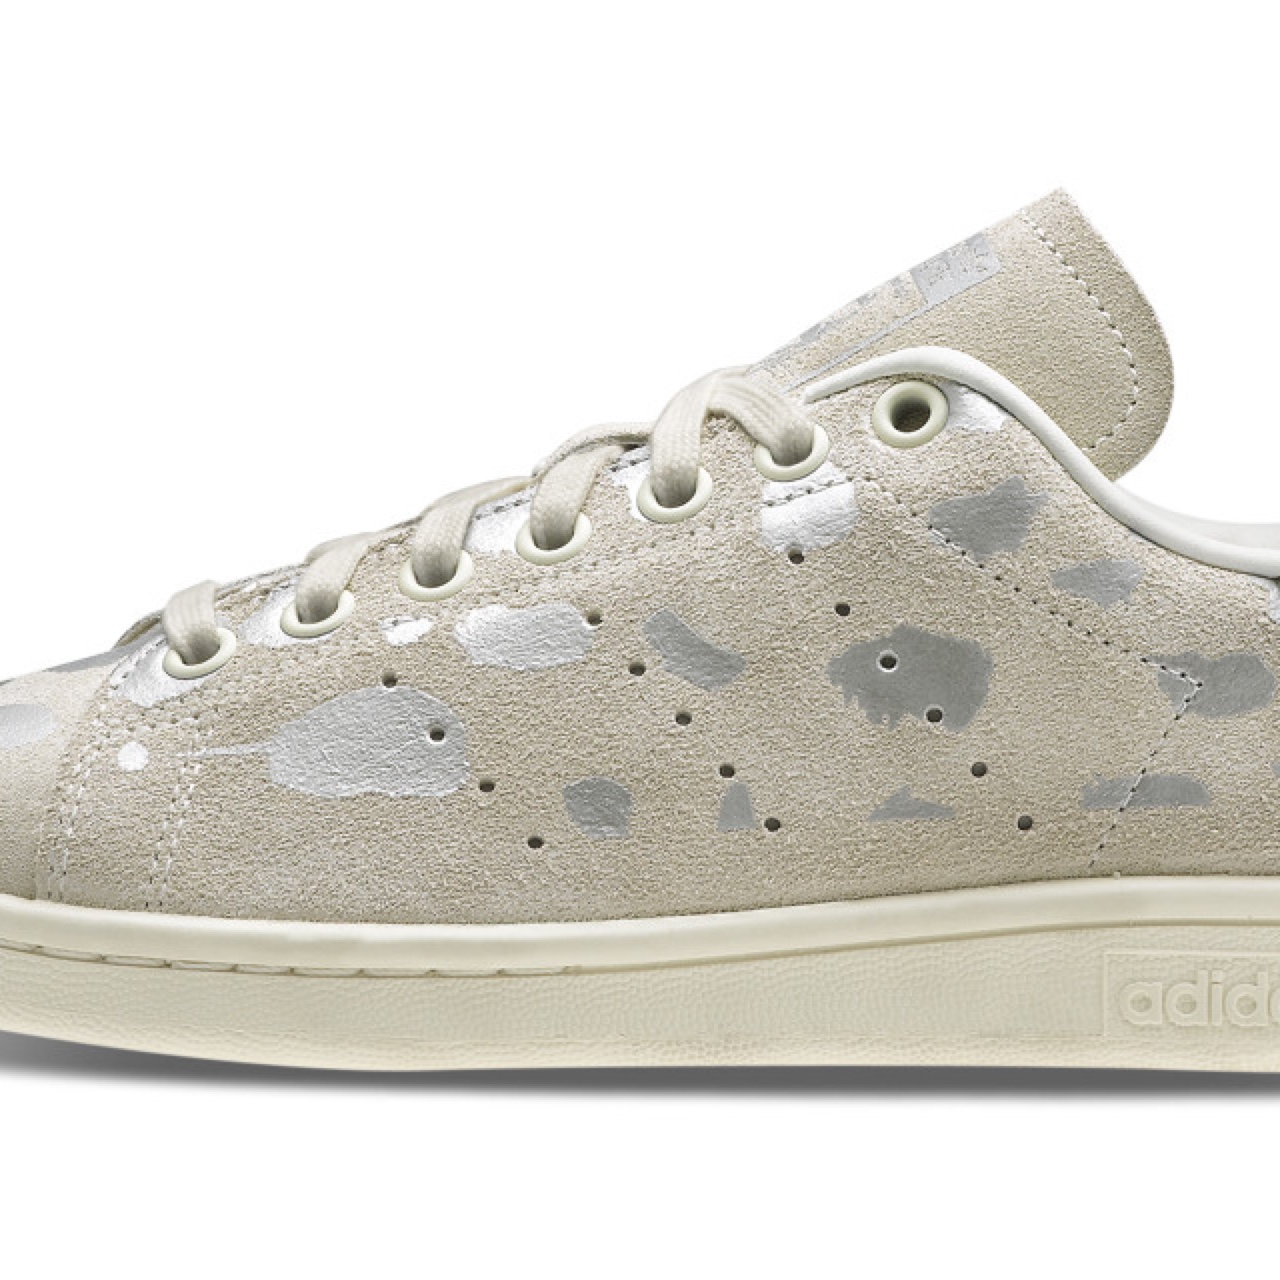 adidas stans smith bianche e beige